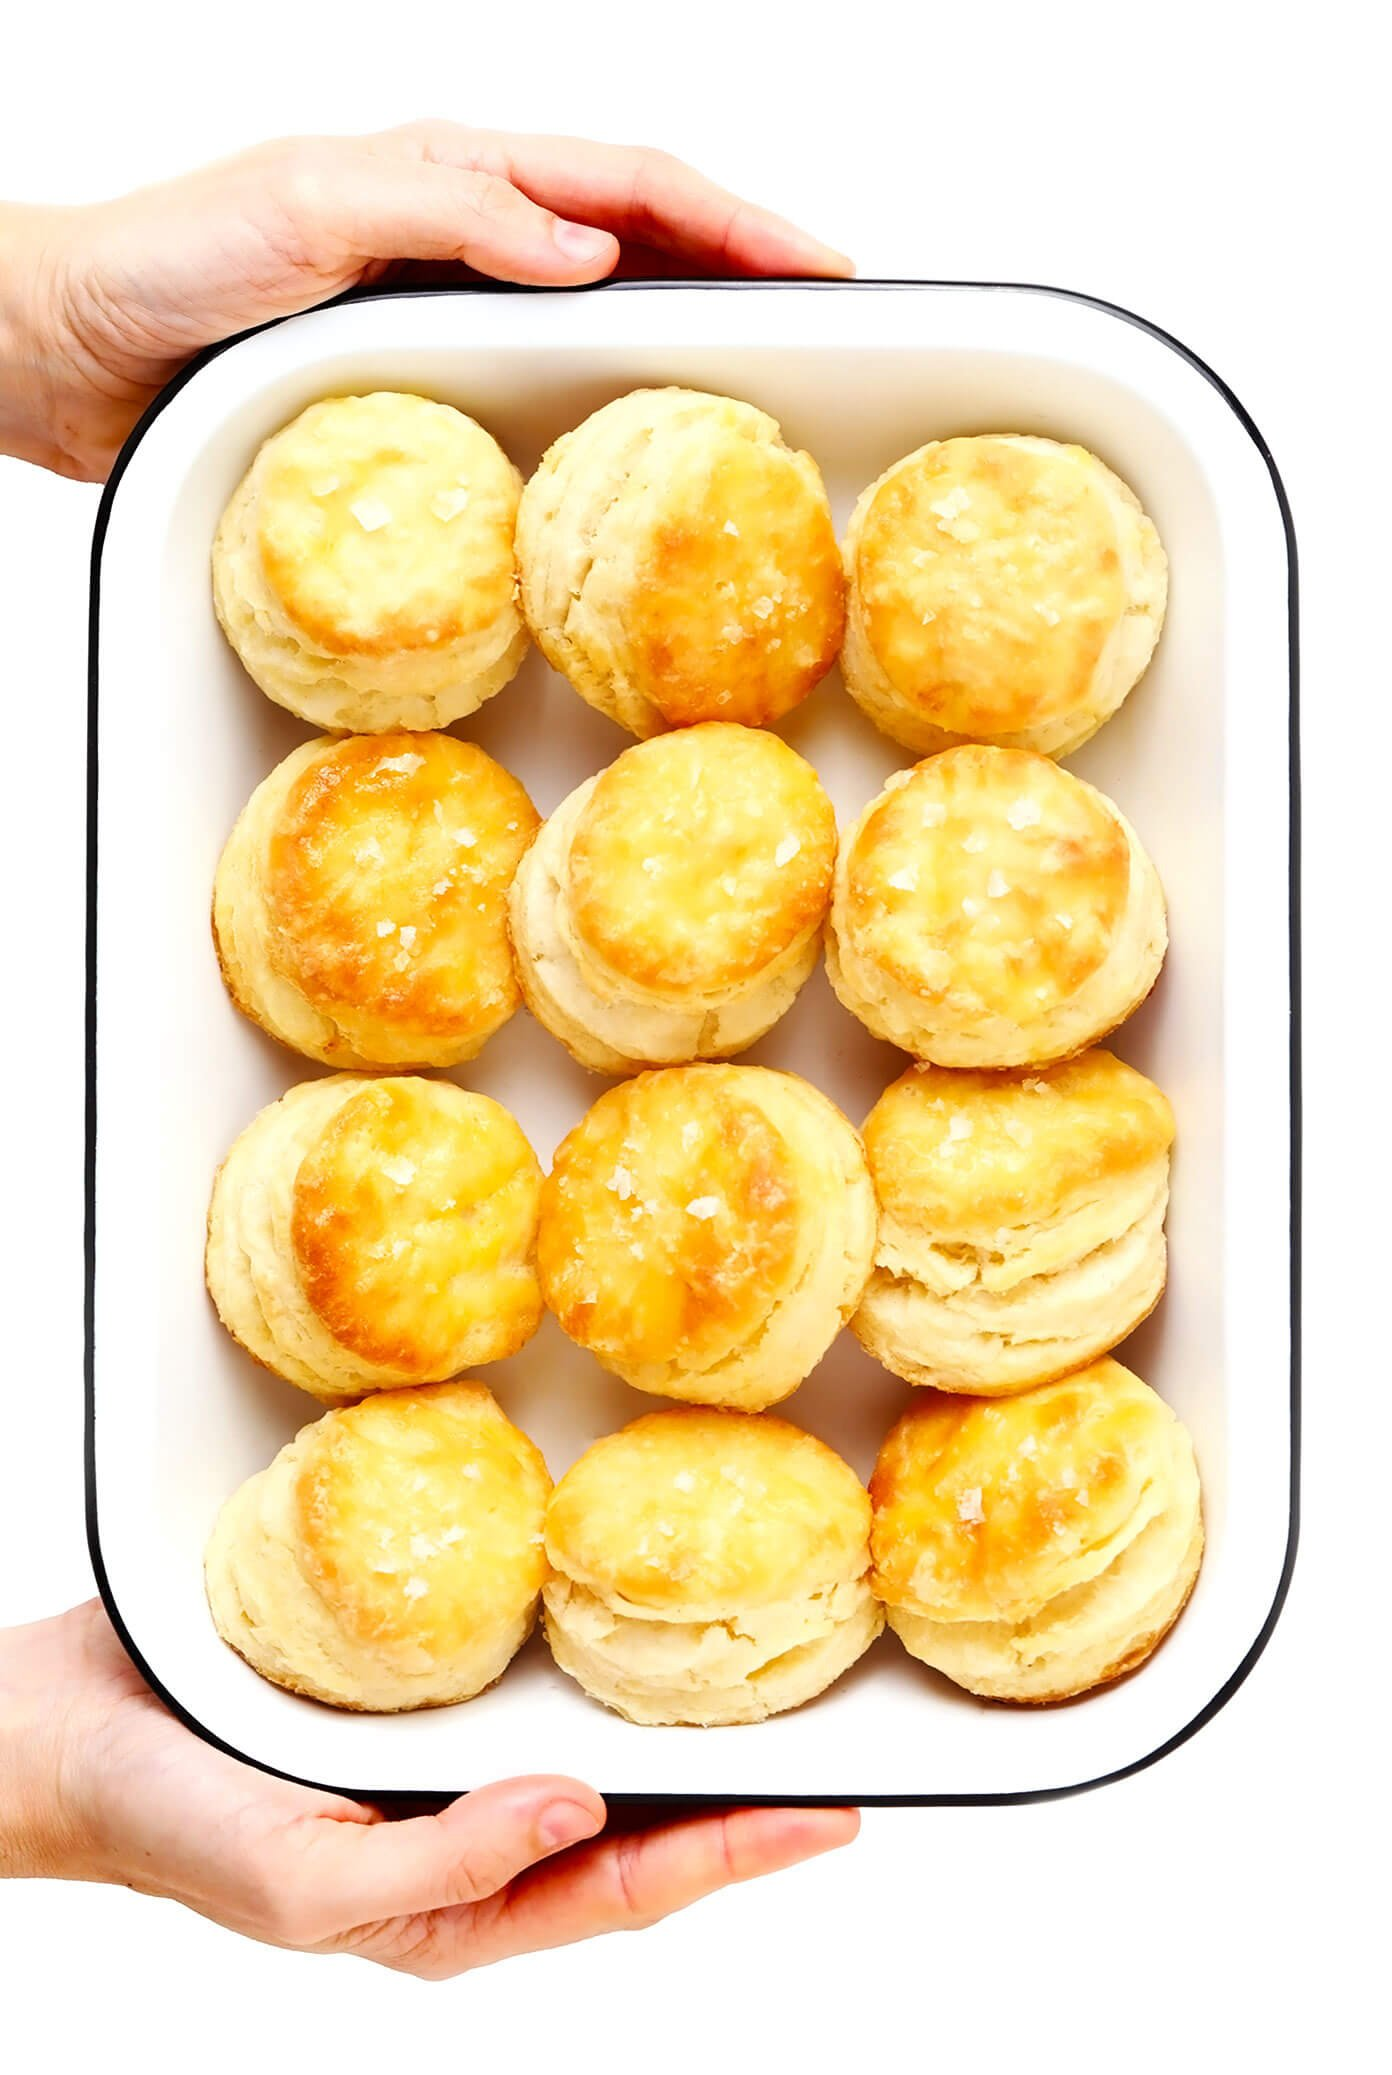 Homemade Biscuits in Pan